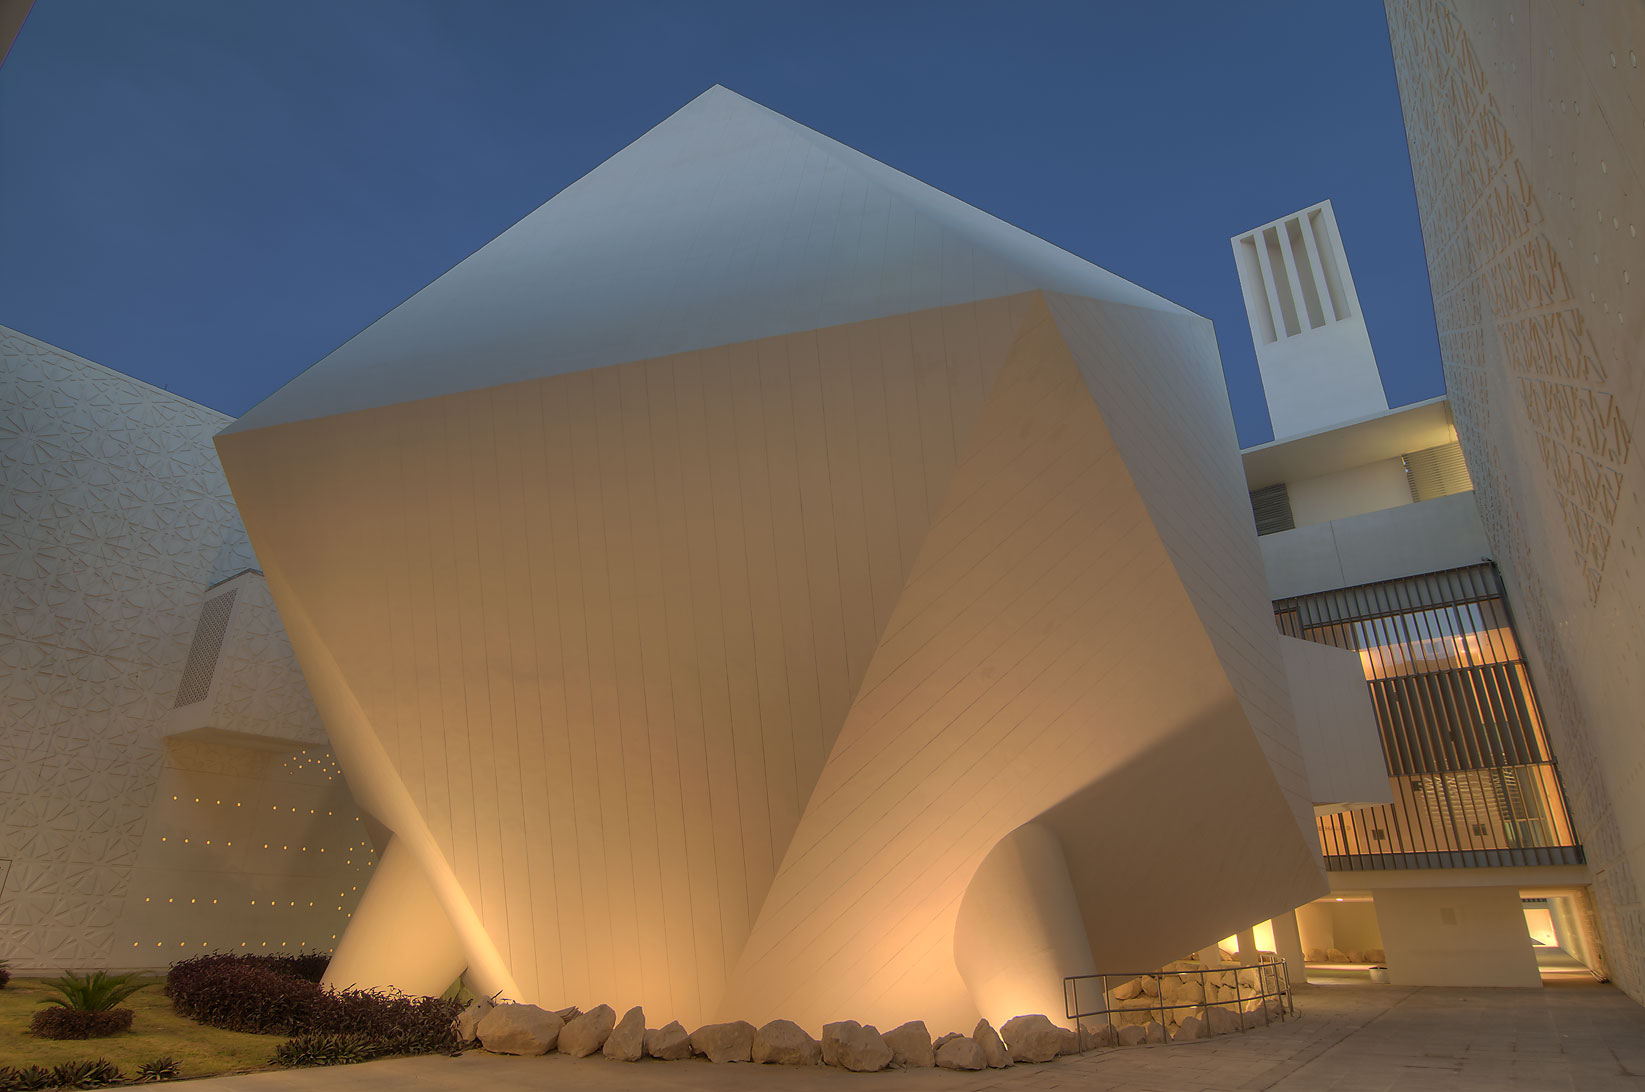 Icosahedron lecture hall of Weill Cornell Medical...City campus at evening. Doha, Qatar